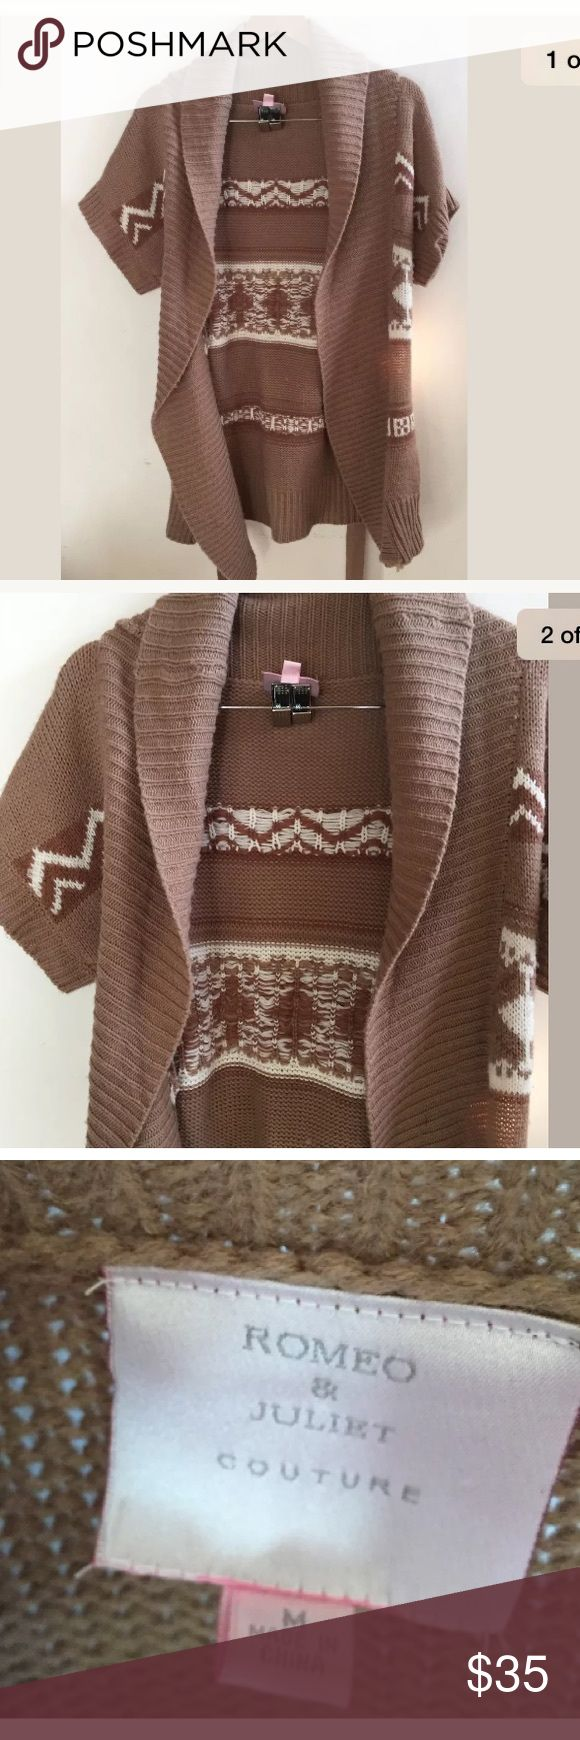 Romeo & Juliet Couture Sweater Cardigan Tribal M Brand: Romeo & Juliet Couture  Material: wool and acrylic  Color: camel and pearl  Pattern: Tribal Knit  Closure: Belt  Condition: EXCELLENT condition!  D16/17 Romeo & Juliet Couture Sweaters